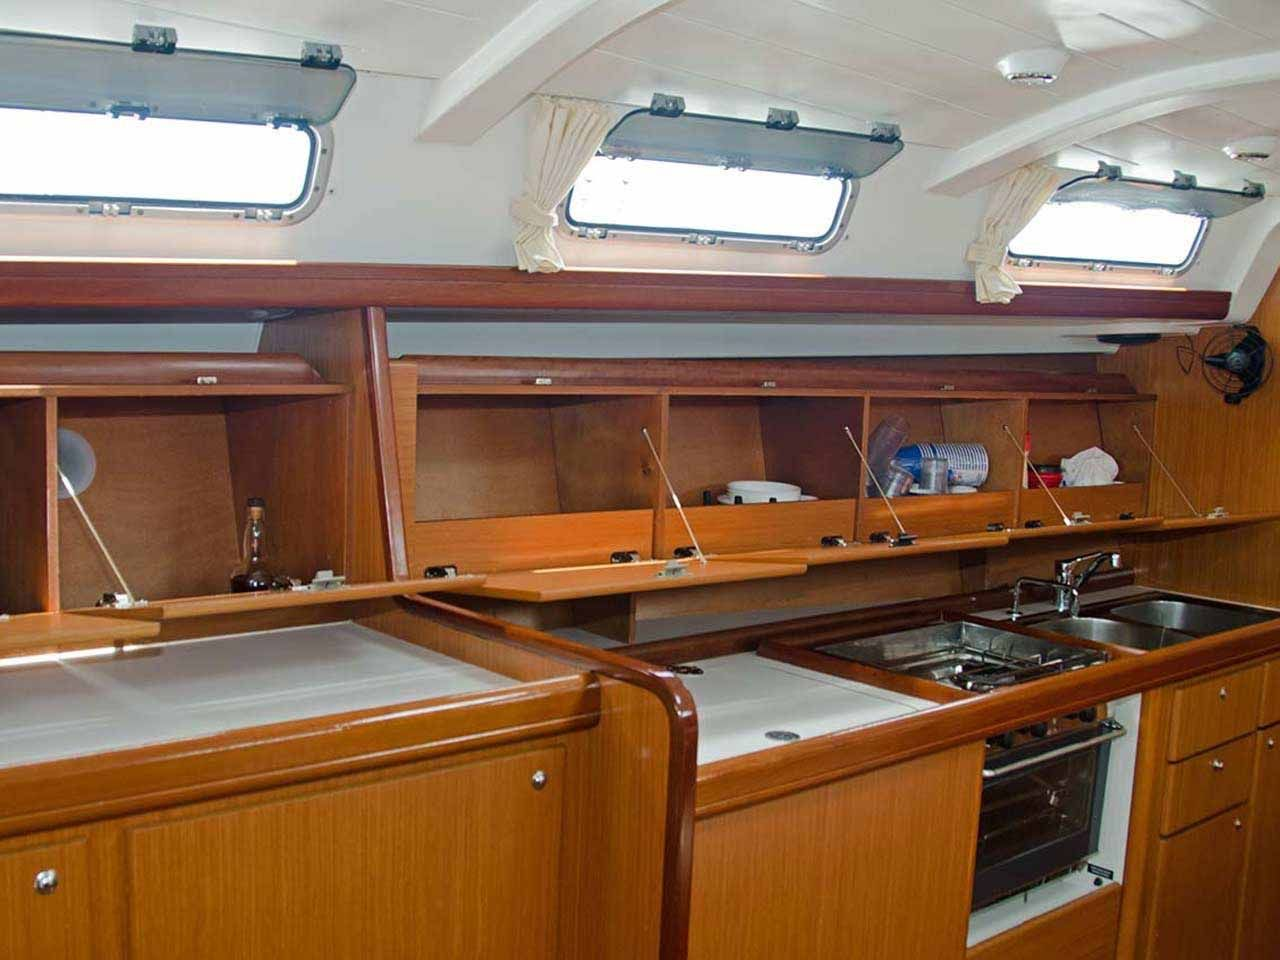 Sailboat Galley Cabinets Google Search Galley Kitchens Small Kitchen Cabinets Boat Interior Design